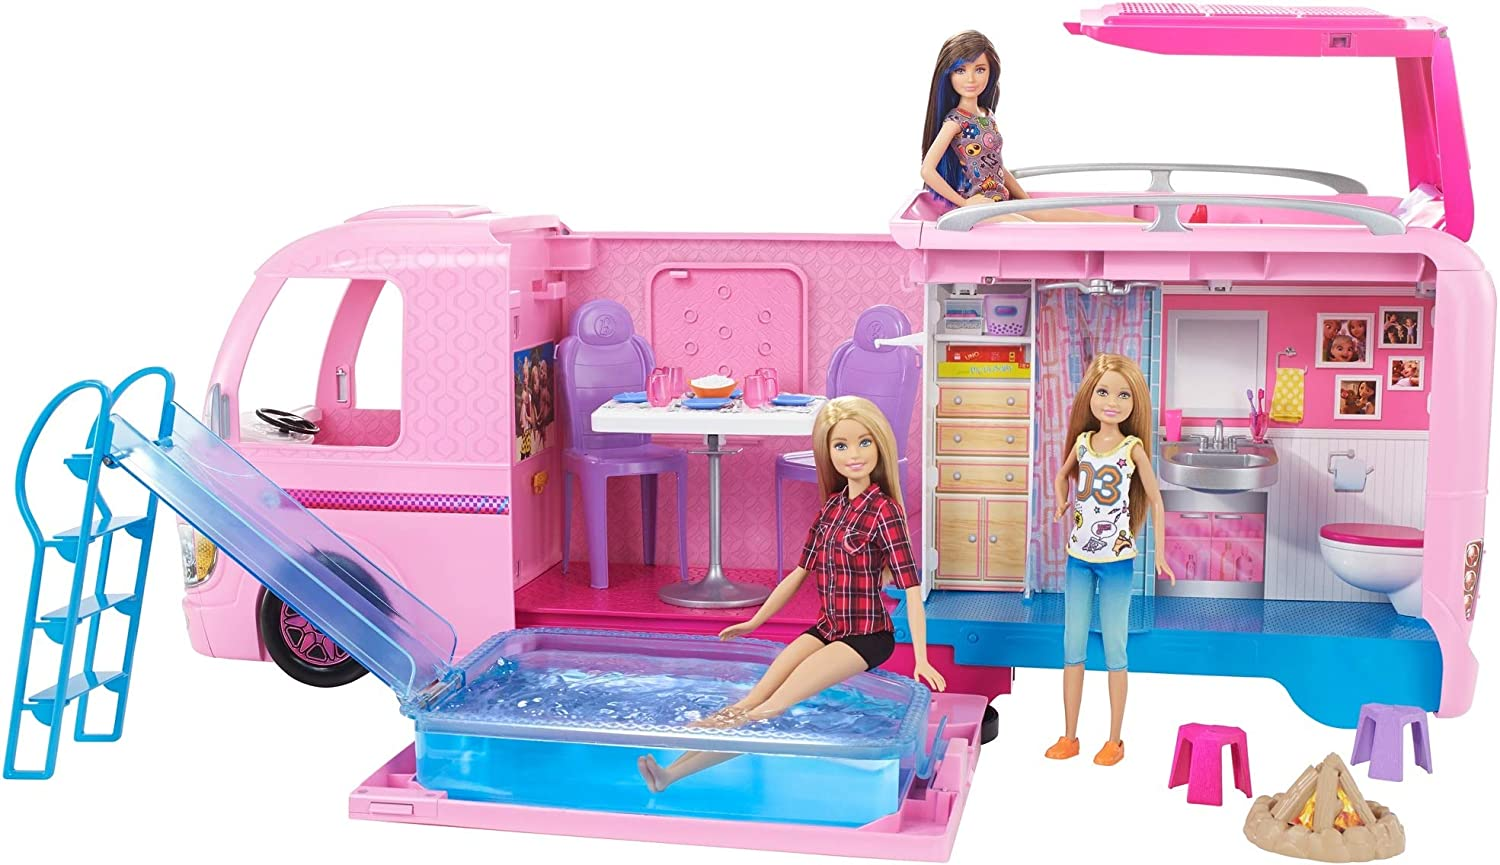 Barbie Camper Pops Out into Play Set with Pool!